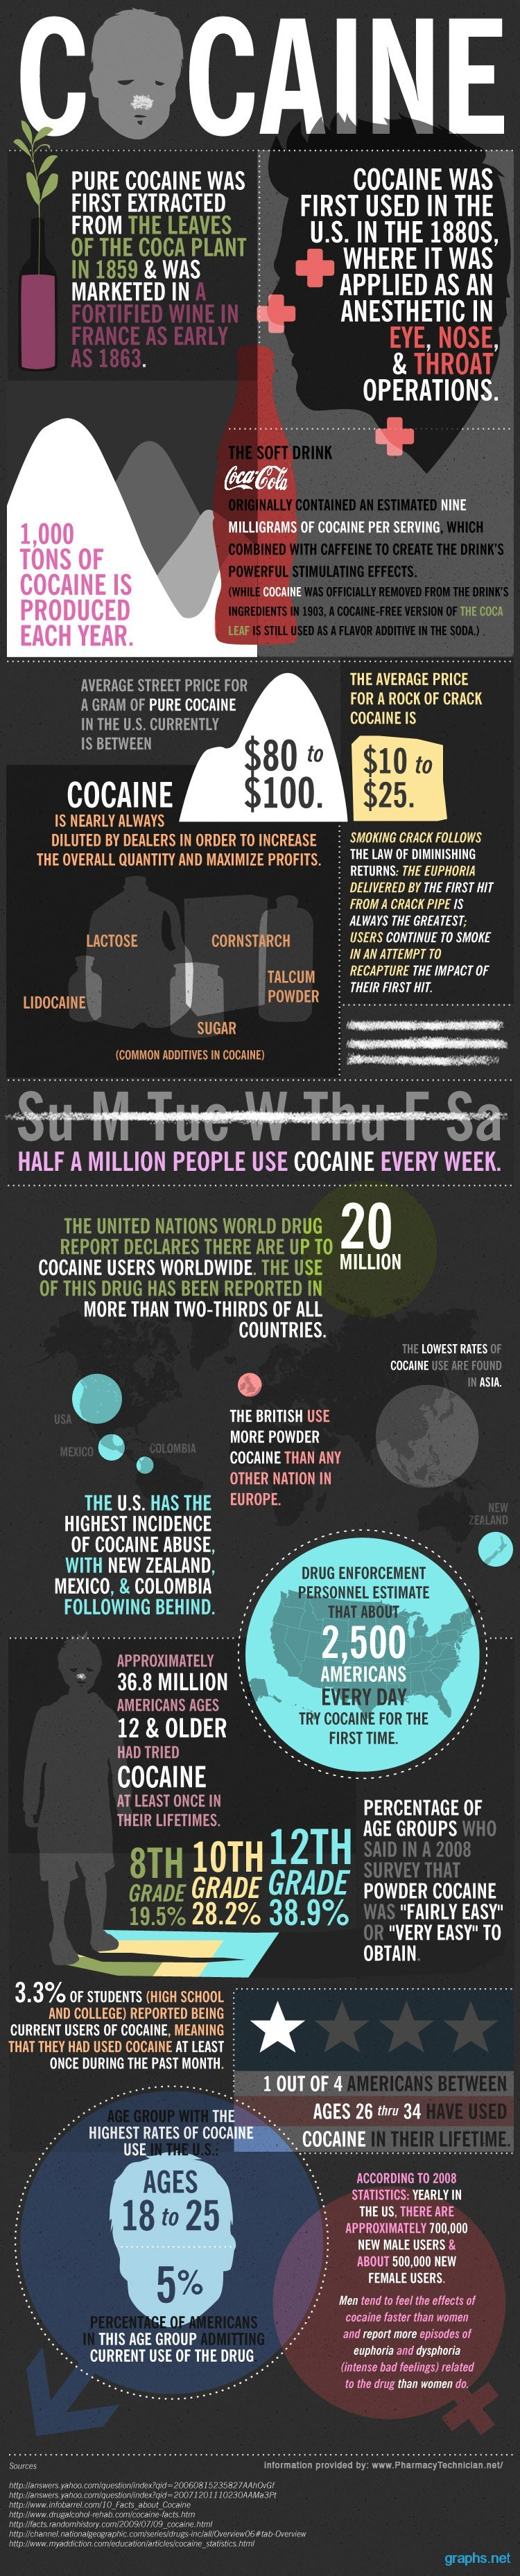 cocaine facts